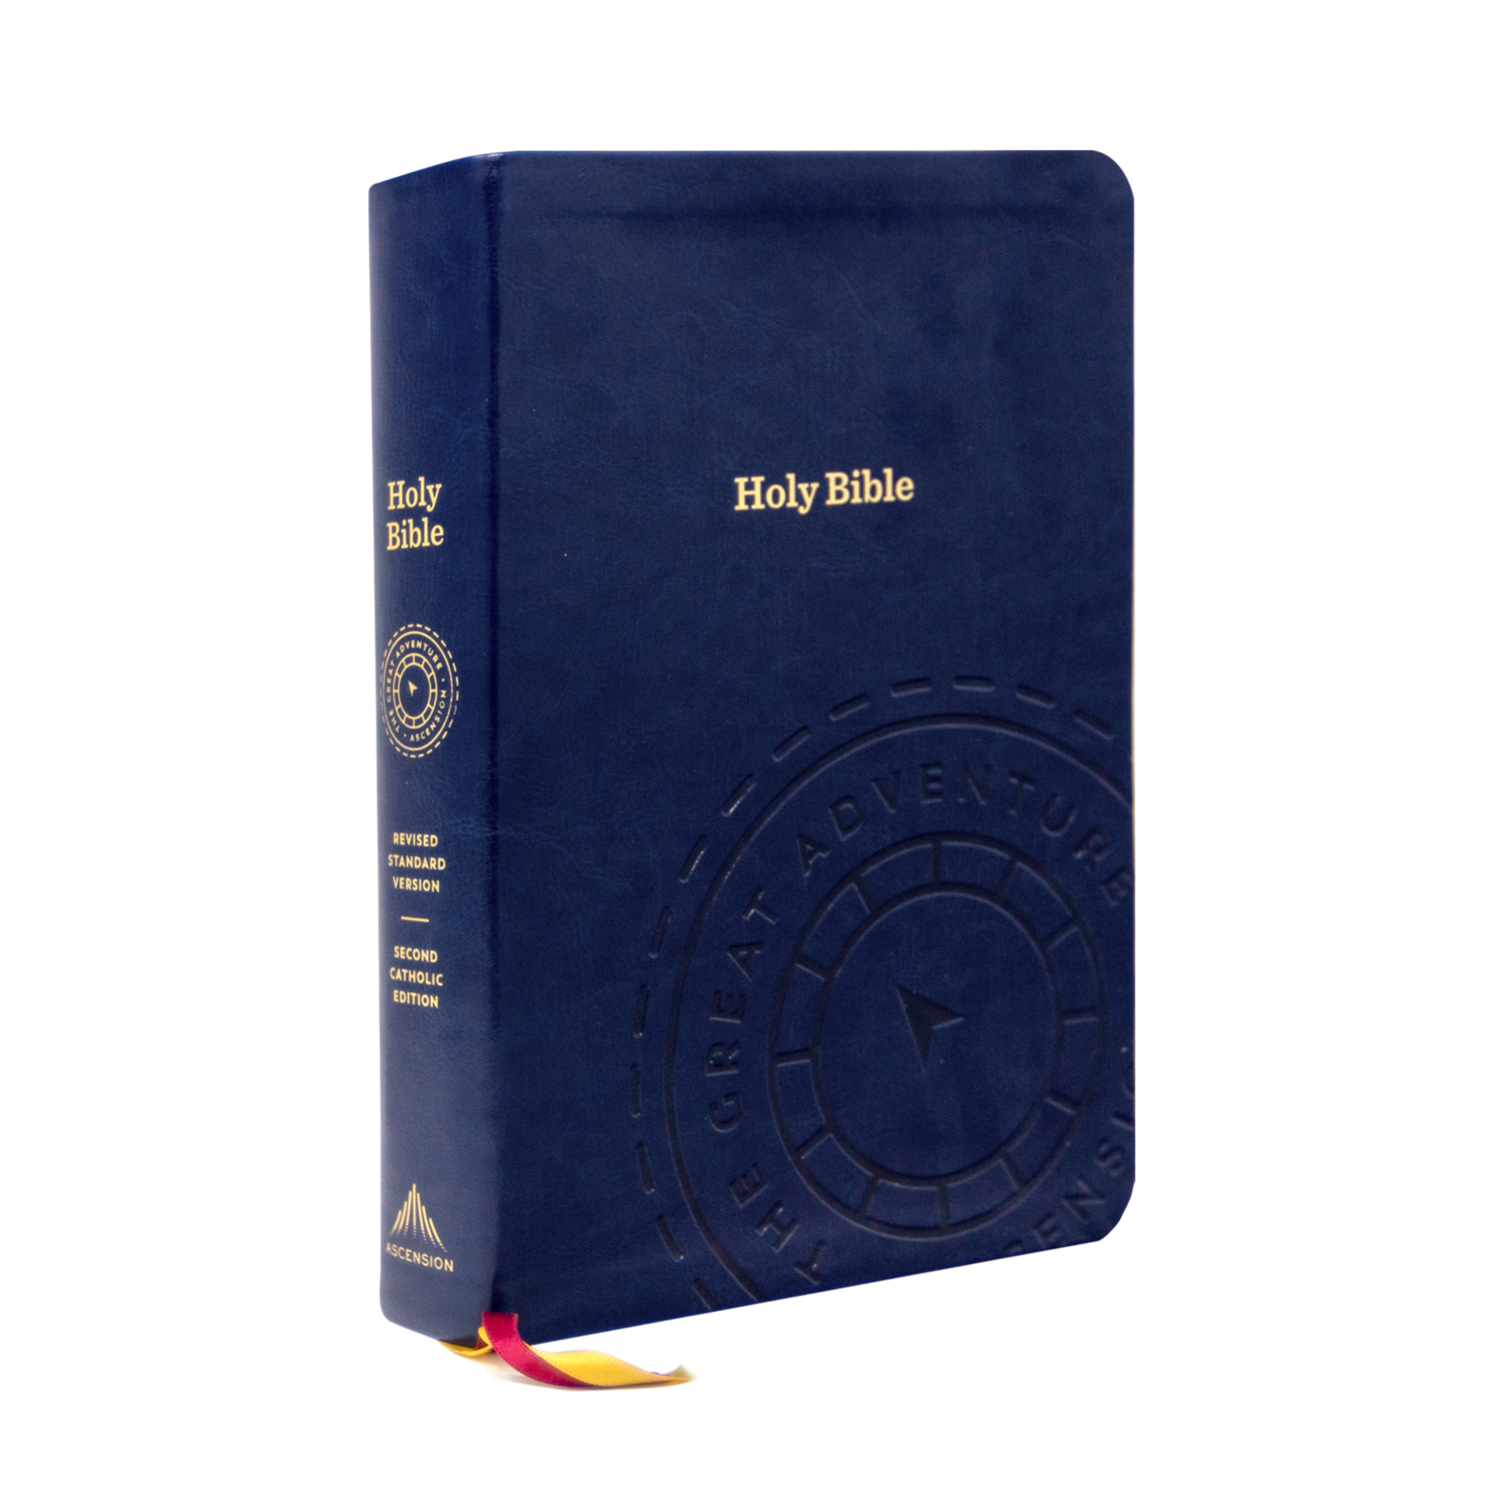 The Great Adventure Catholic Bible by Jeff Cavens, Mary Healy, Andrew Swafford, and Peter Williamson